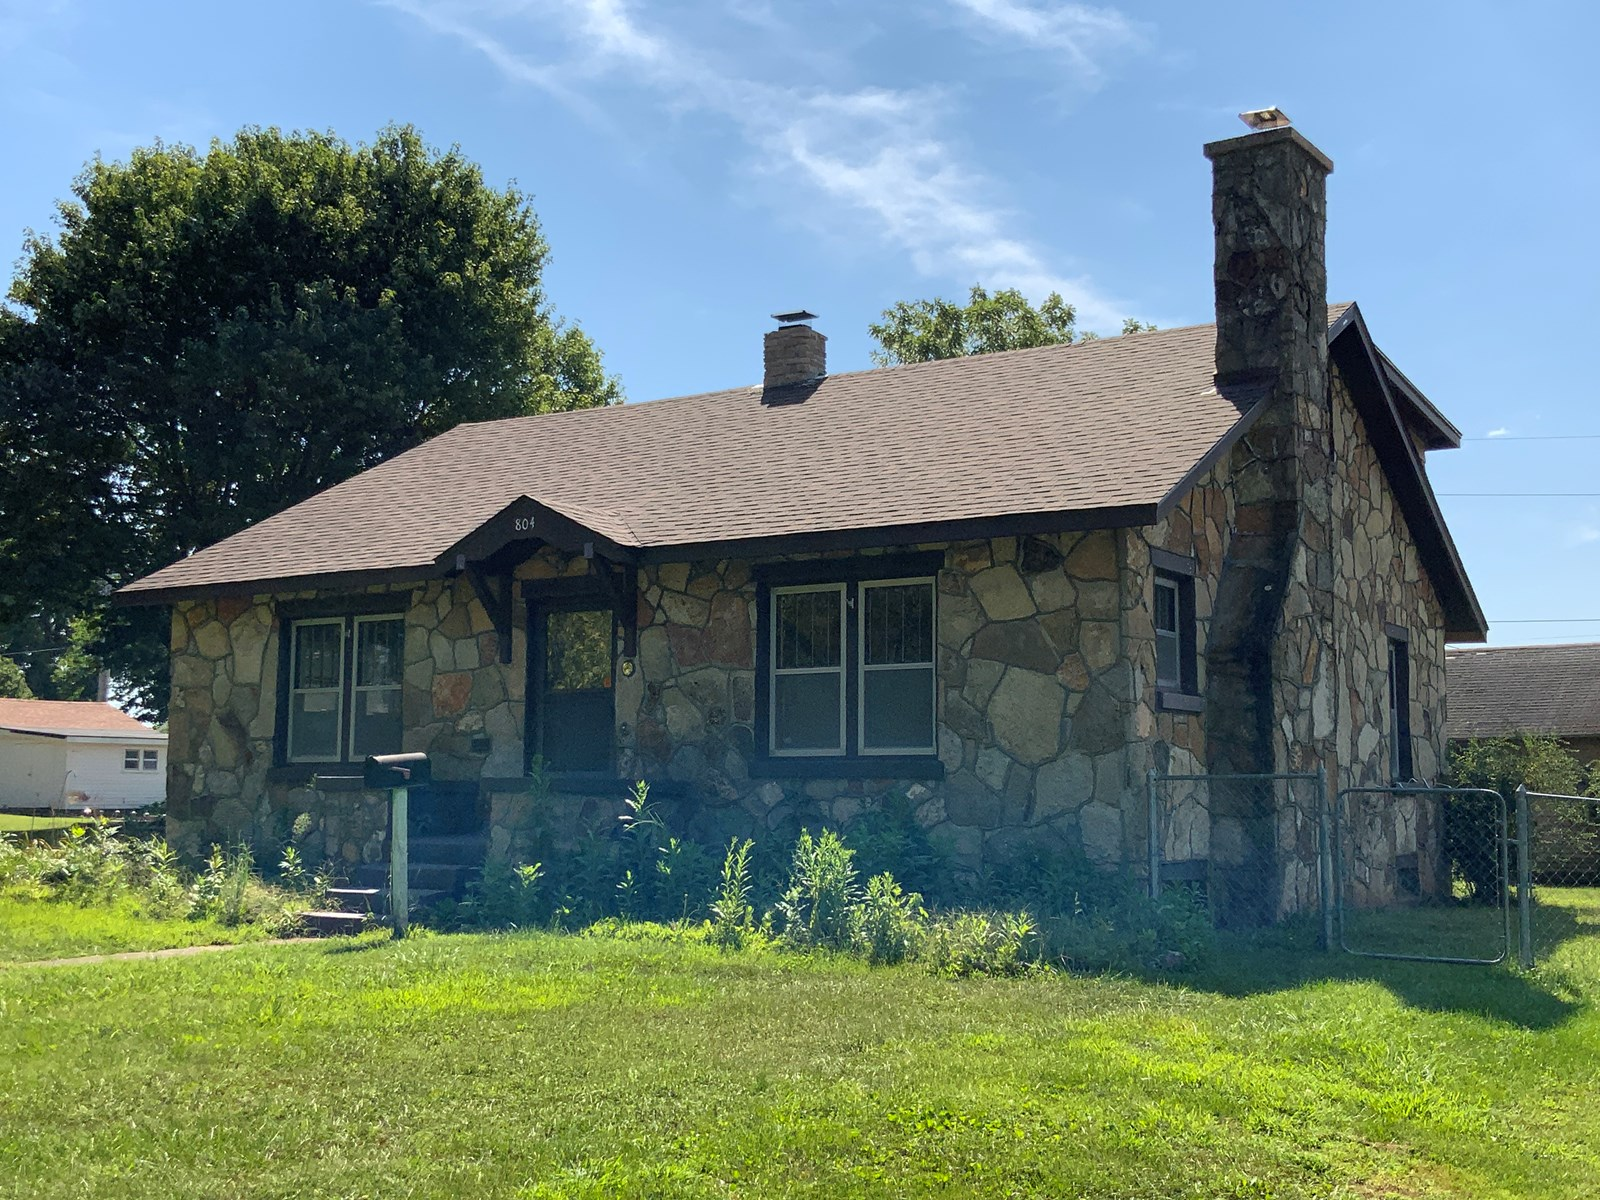 Native Stone House in Town in South Central Missouri